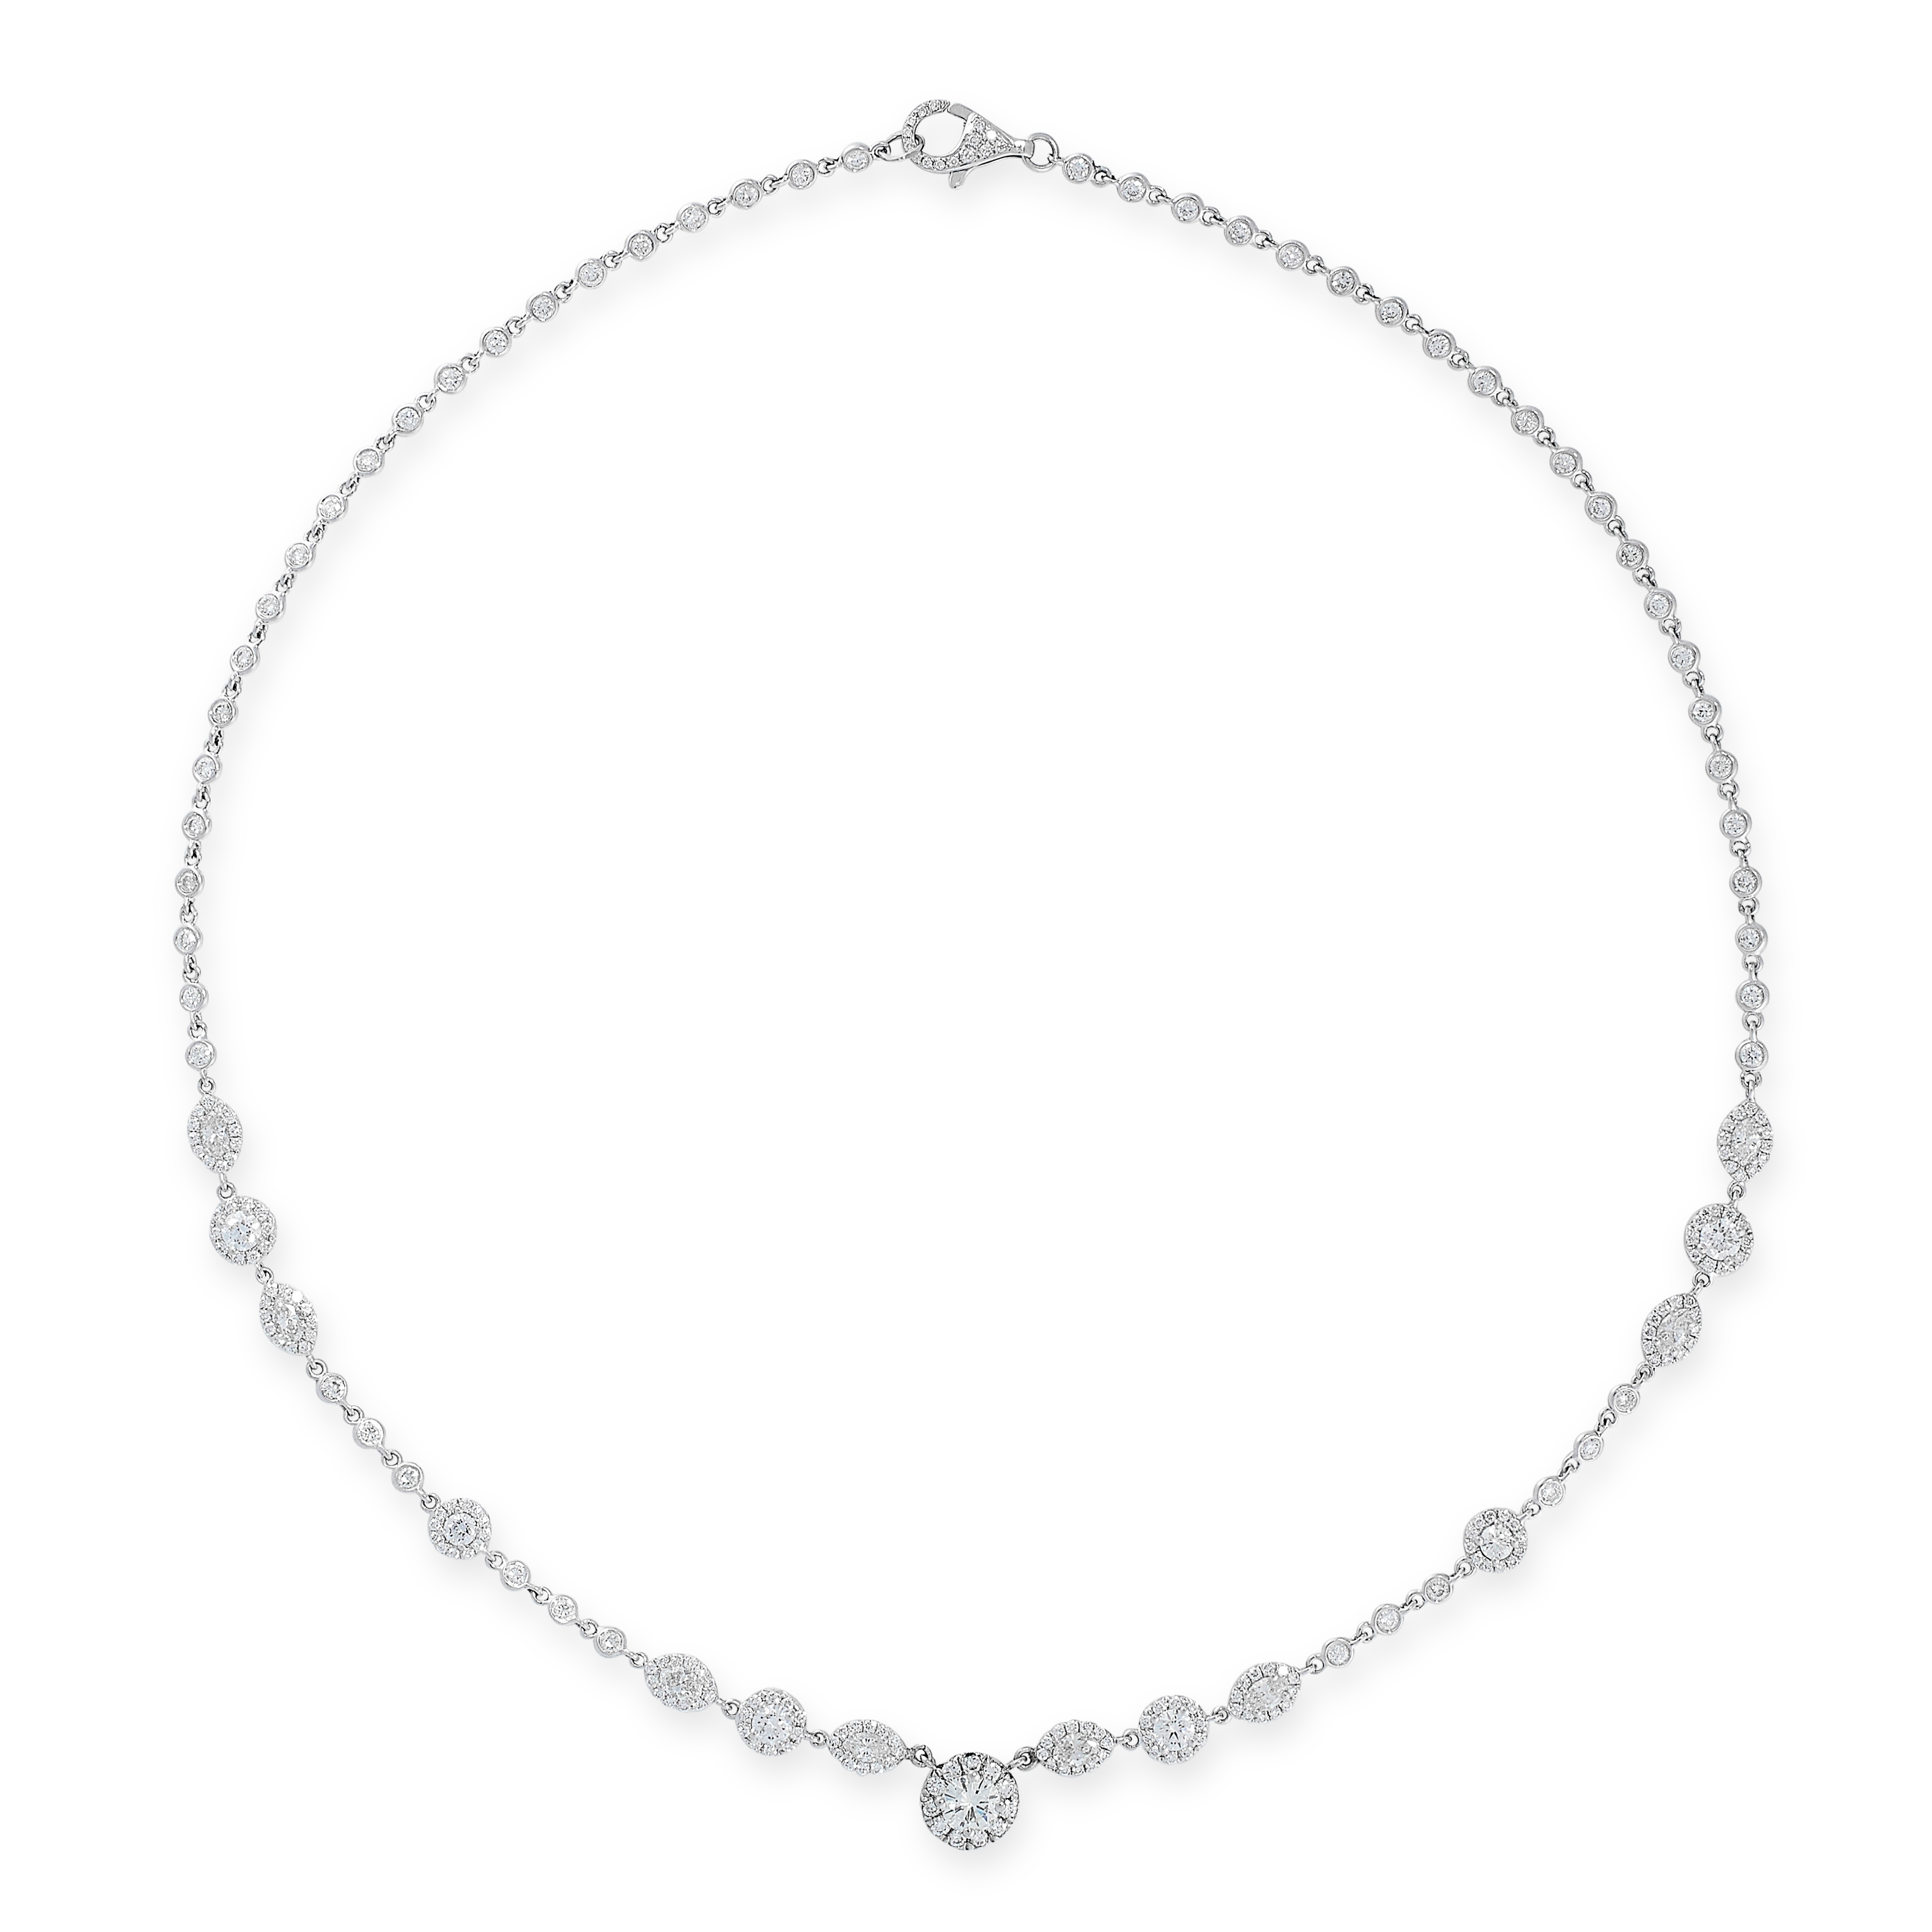 DIAMOND NECKLACE in 18ct white gold, formed of fifteen clusters of round and marquise cut